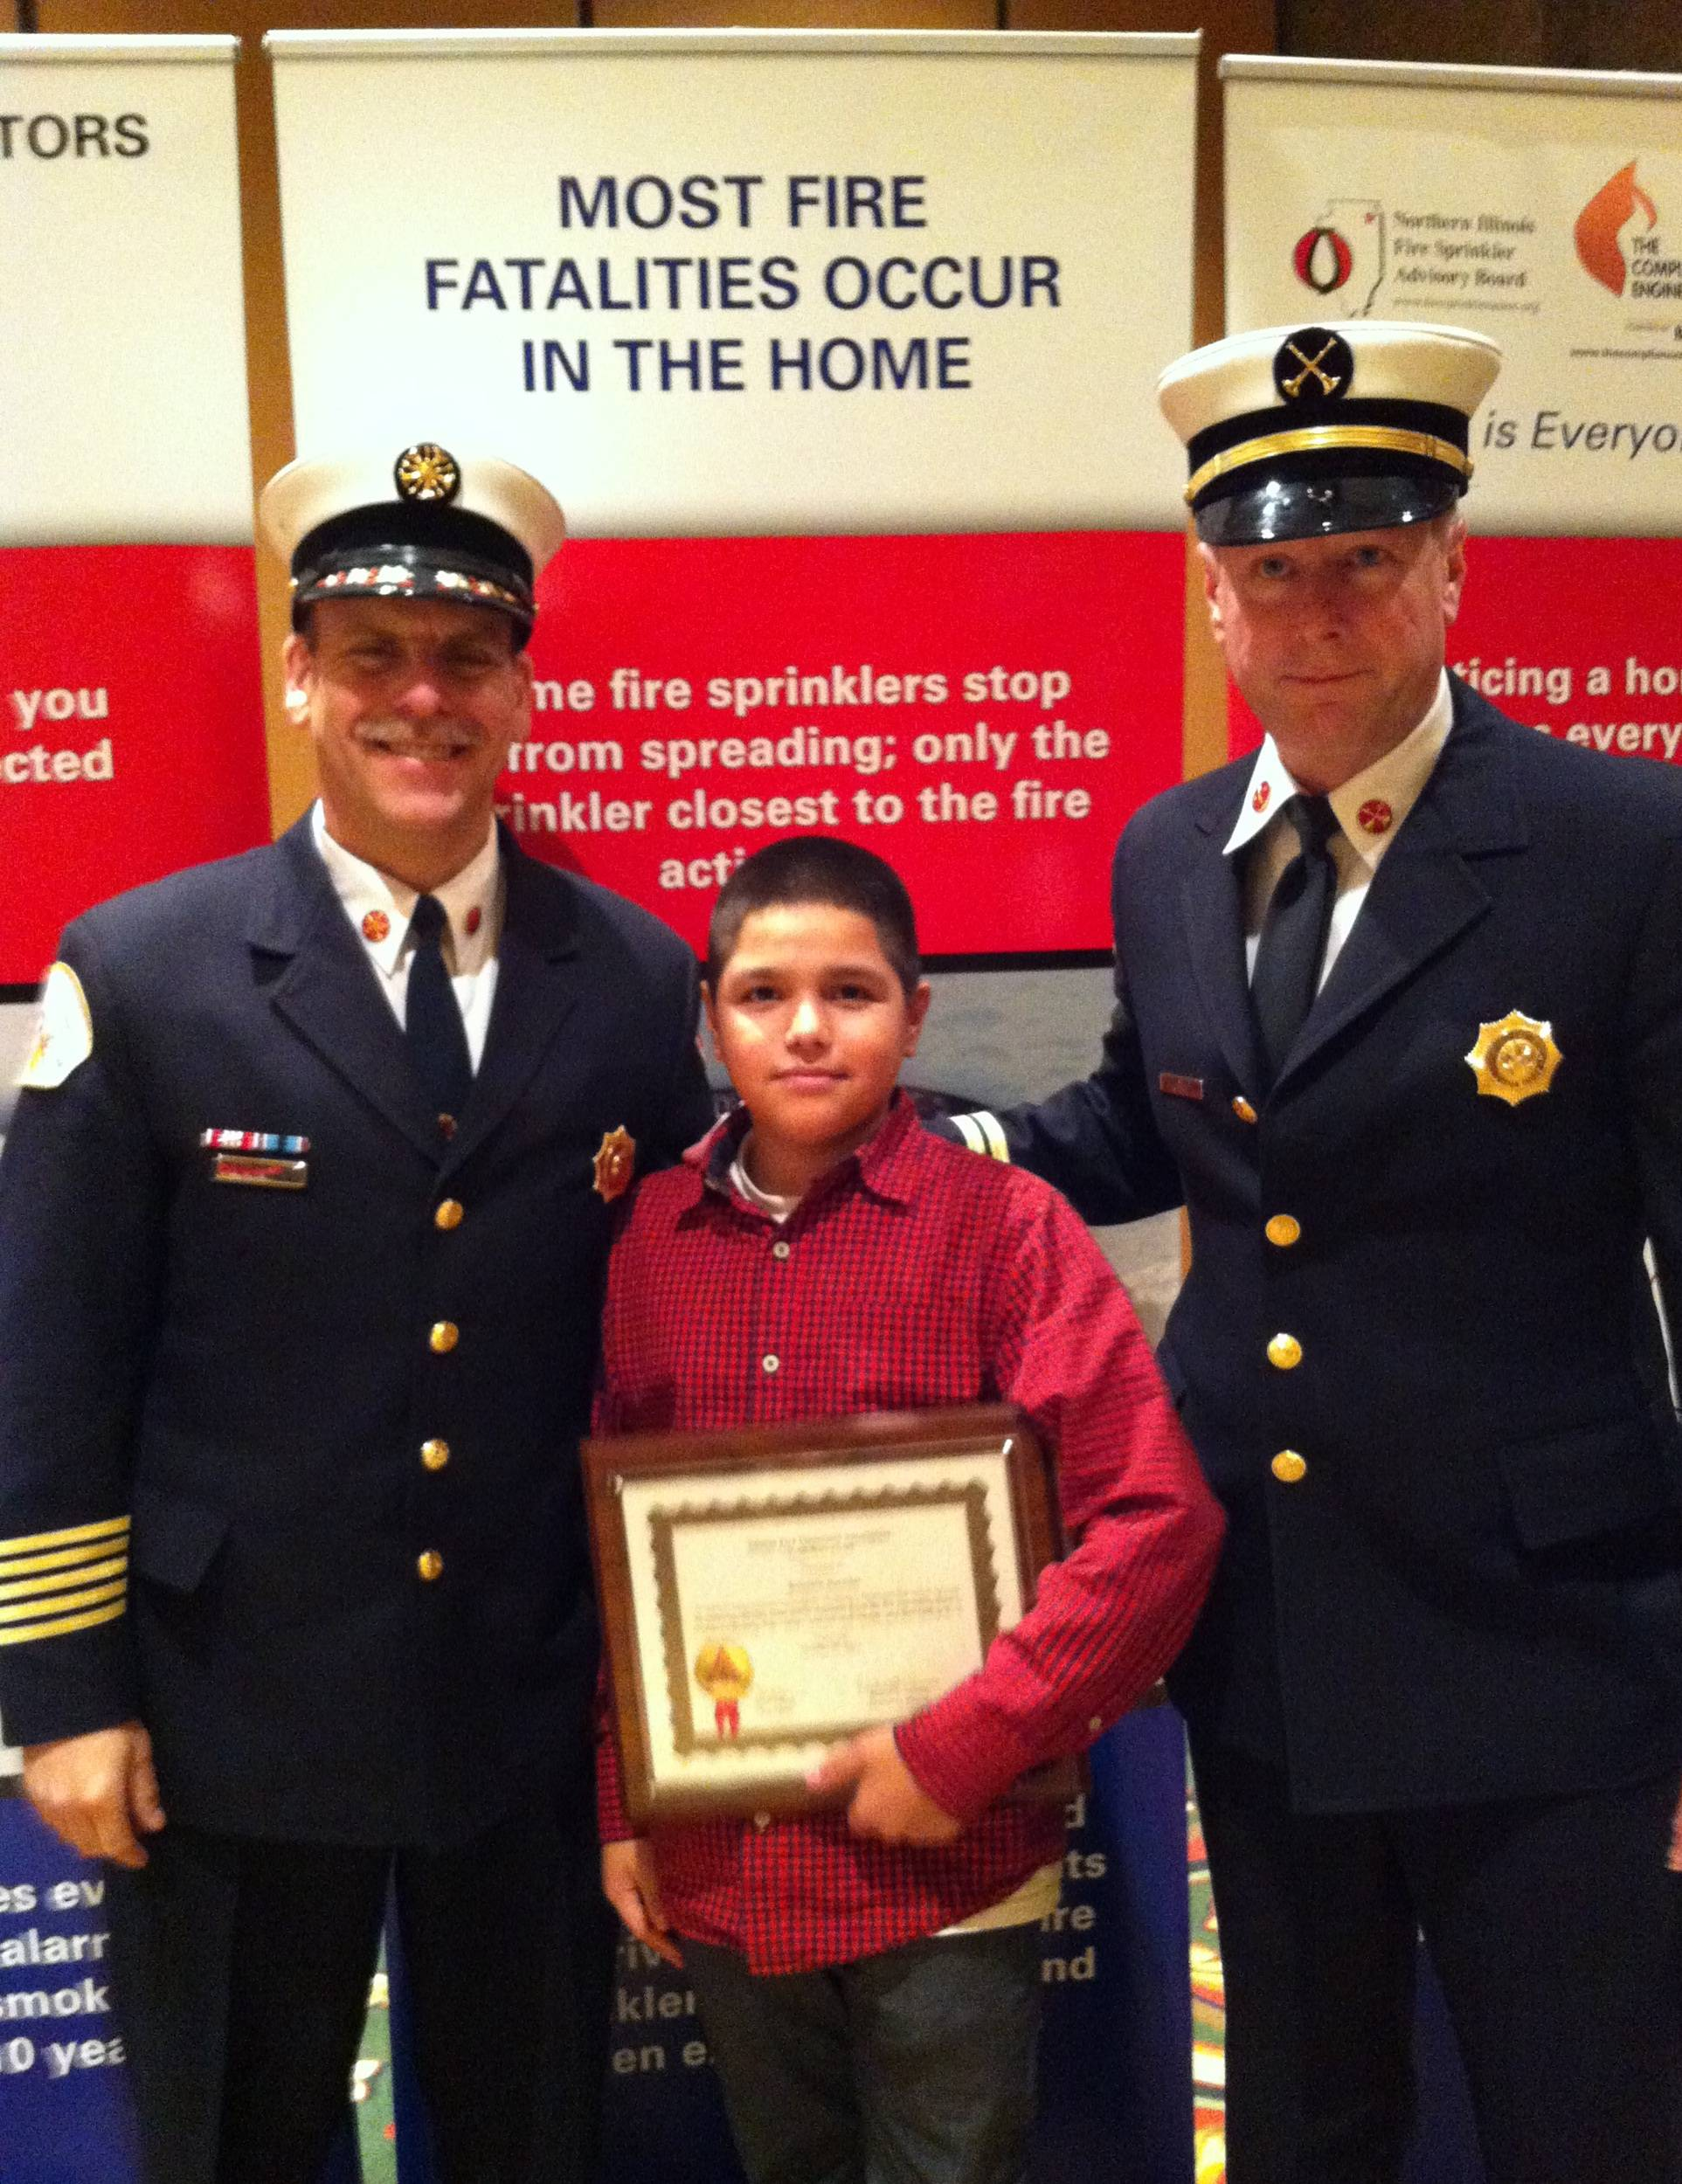 (pictured left to right) Des Plaines Fire Department Chief Alan Wax, Des Plaines resident Benjy Banuelos, displaying the Youth Hero Award, and Division Chief of Fire Prevention Jeff Schuck pose for a photograph in front of a new fire safety banner created by the Inspectors Association at the Illinois Fire Inspectors Association Award Luncheon, Friday, October 26, 2012, at Medinah Banquets, Addison. Banuelos received the award for his actions on Friday, December 23, 2011, when his family's townhouse caught fire in the 1300 block of Fargo Avenue in Des Plaines.